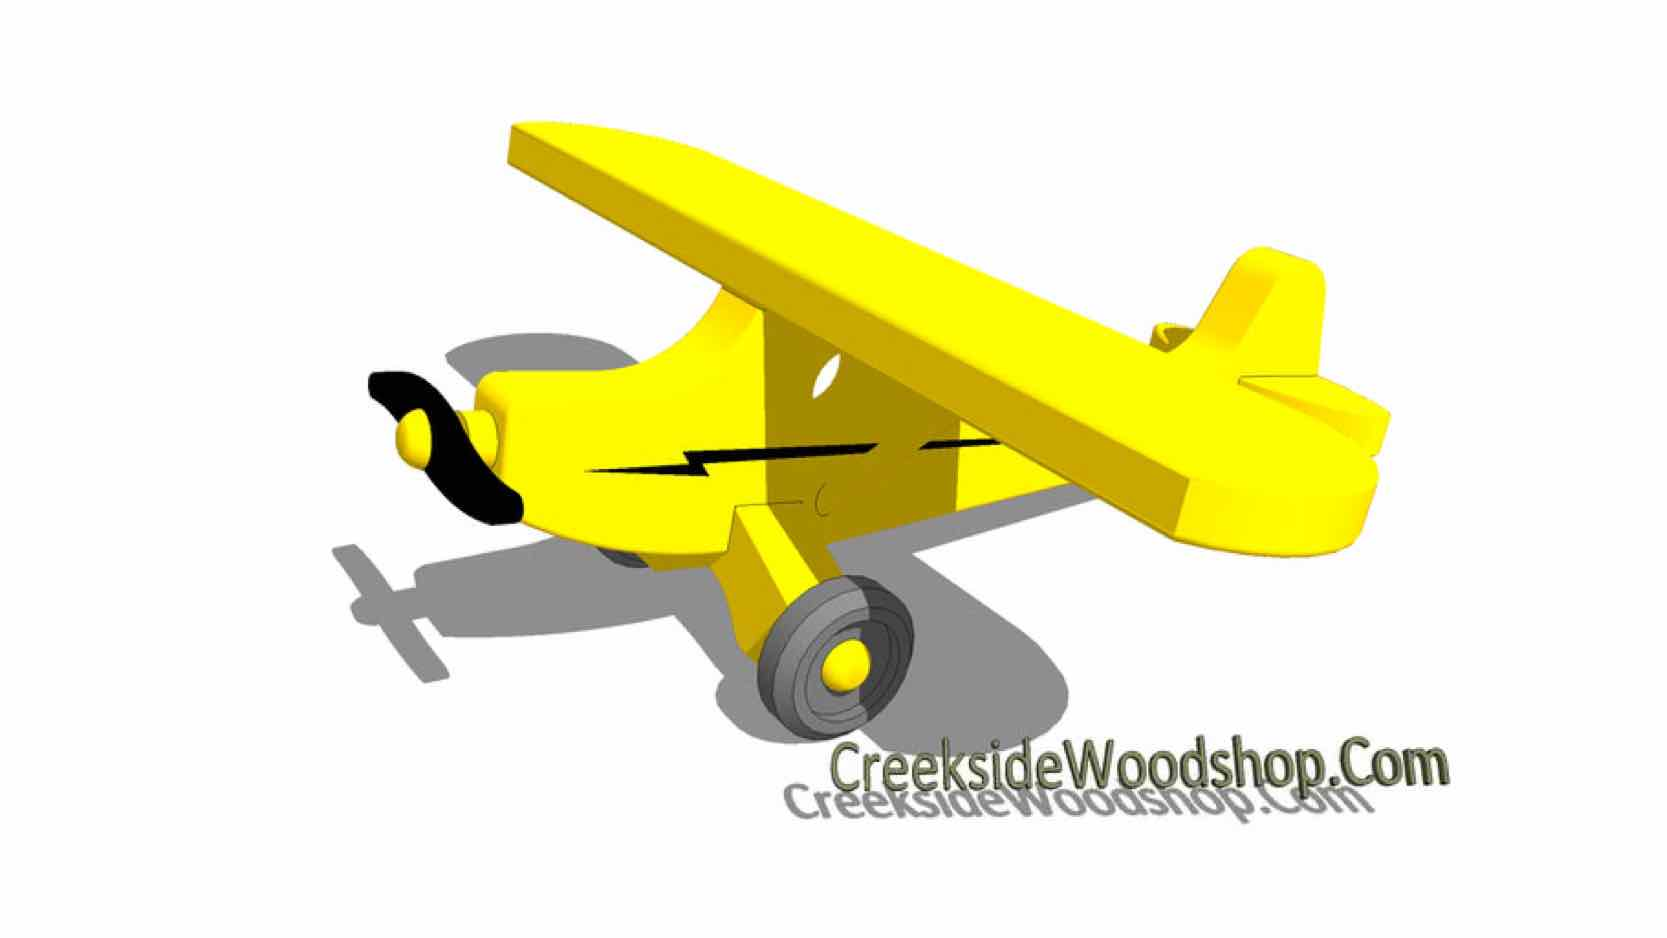 toys,airplanes,sketchup,Google 3D,3-D warehouse,childrens,childs,kids,,drawings,free woodworking plans,projects,do it yourself,woodworkers